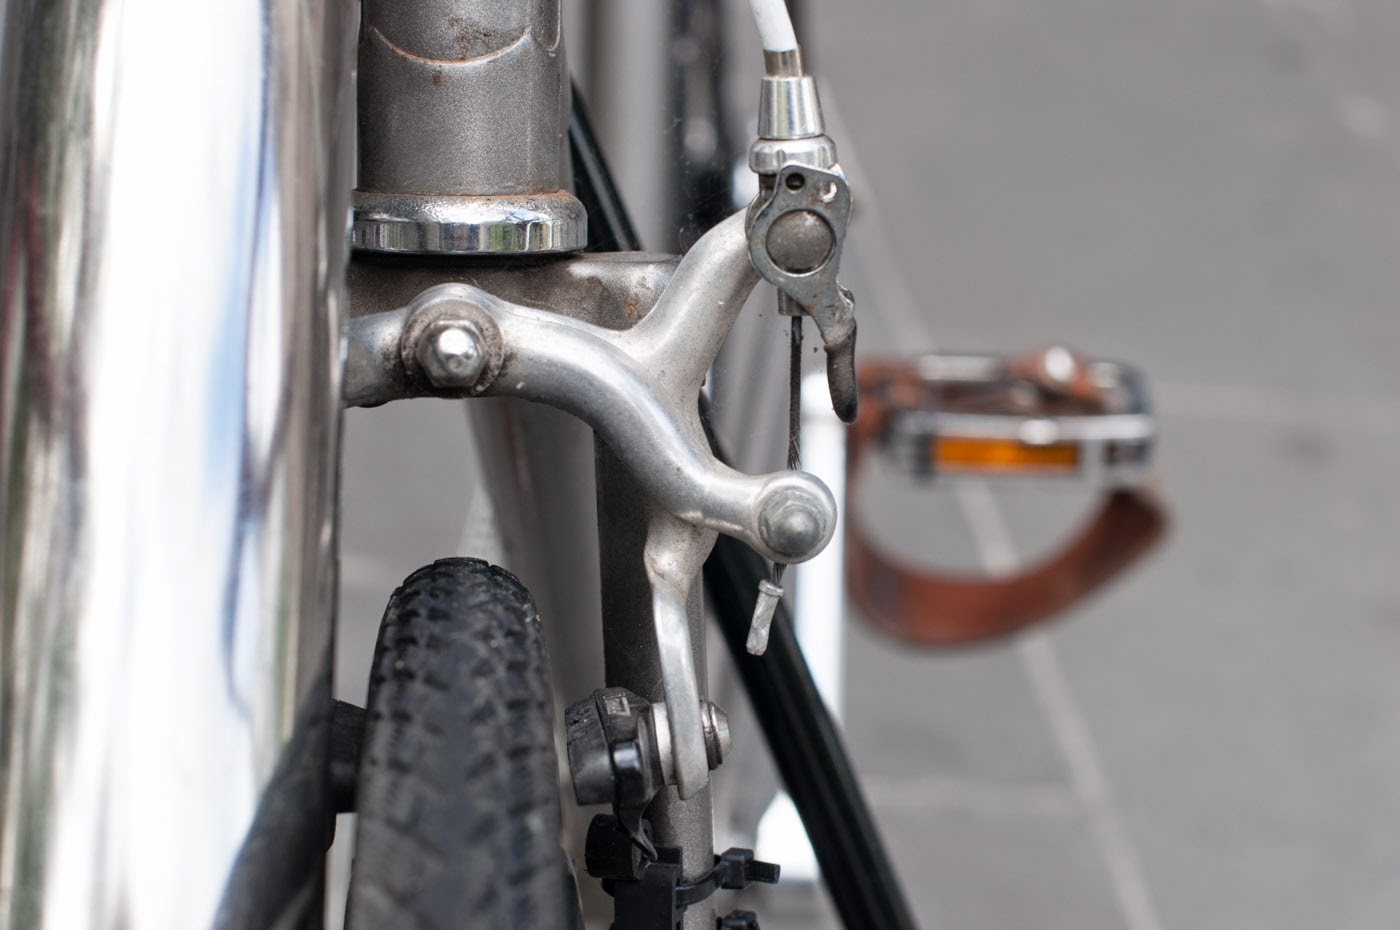 single speed, conversion, road bike, bicycle, Swanston street, Melbourne, Australia, the biketorialist, tim macauley, Macauley, detail, leather, frame, biketorialist, bespoke, custom, customisation, style, bike, bicycle, front brake